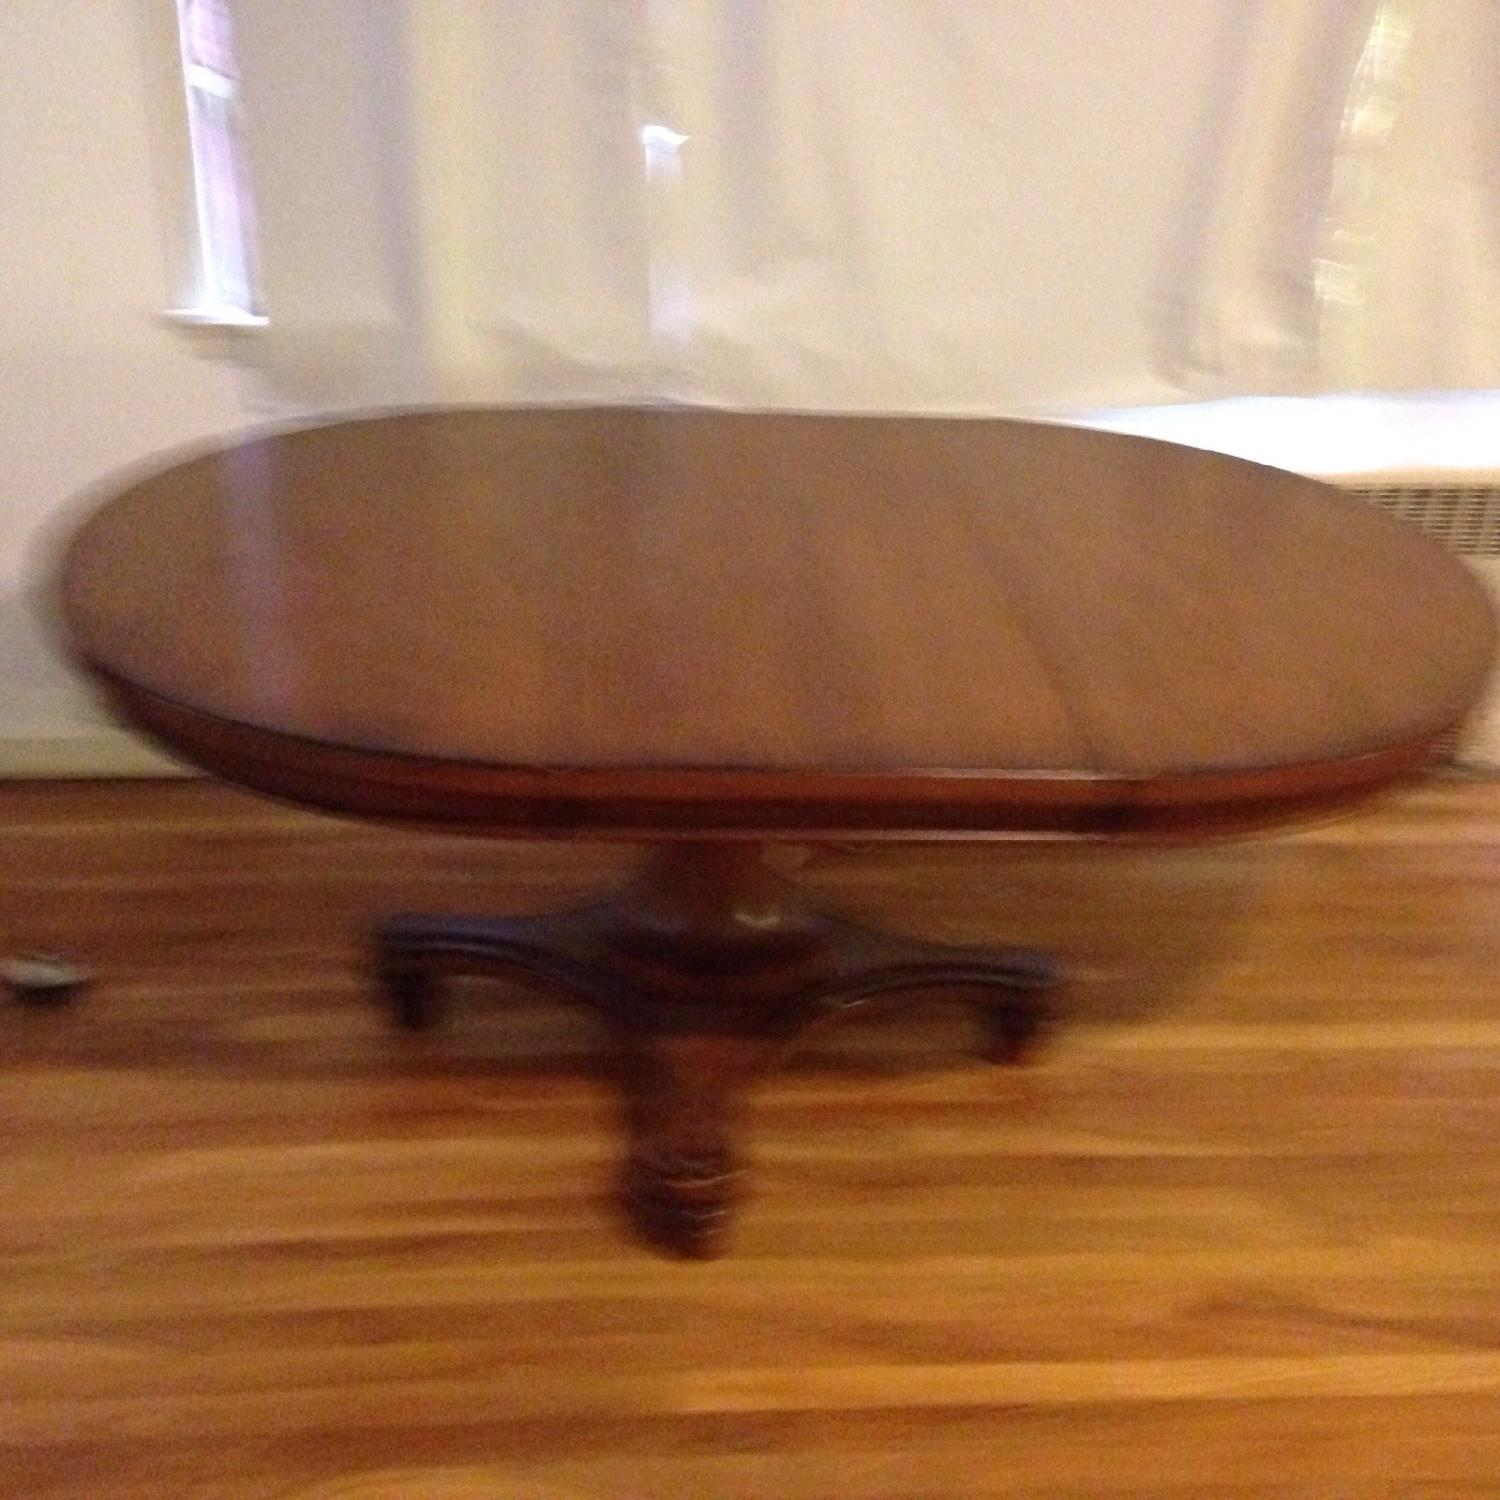 Pottery Barn Dining Room Table w/ Leaf - image-2